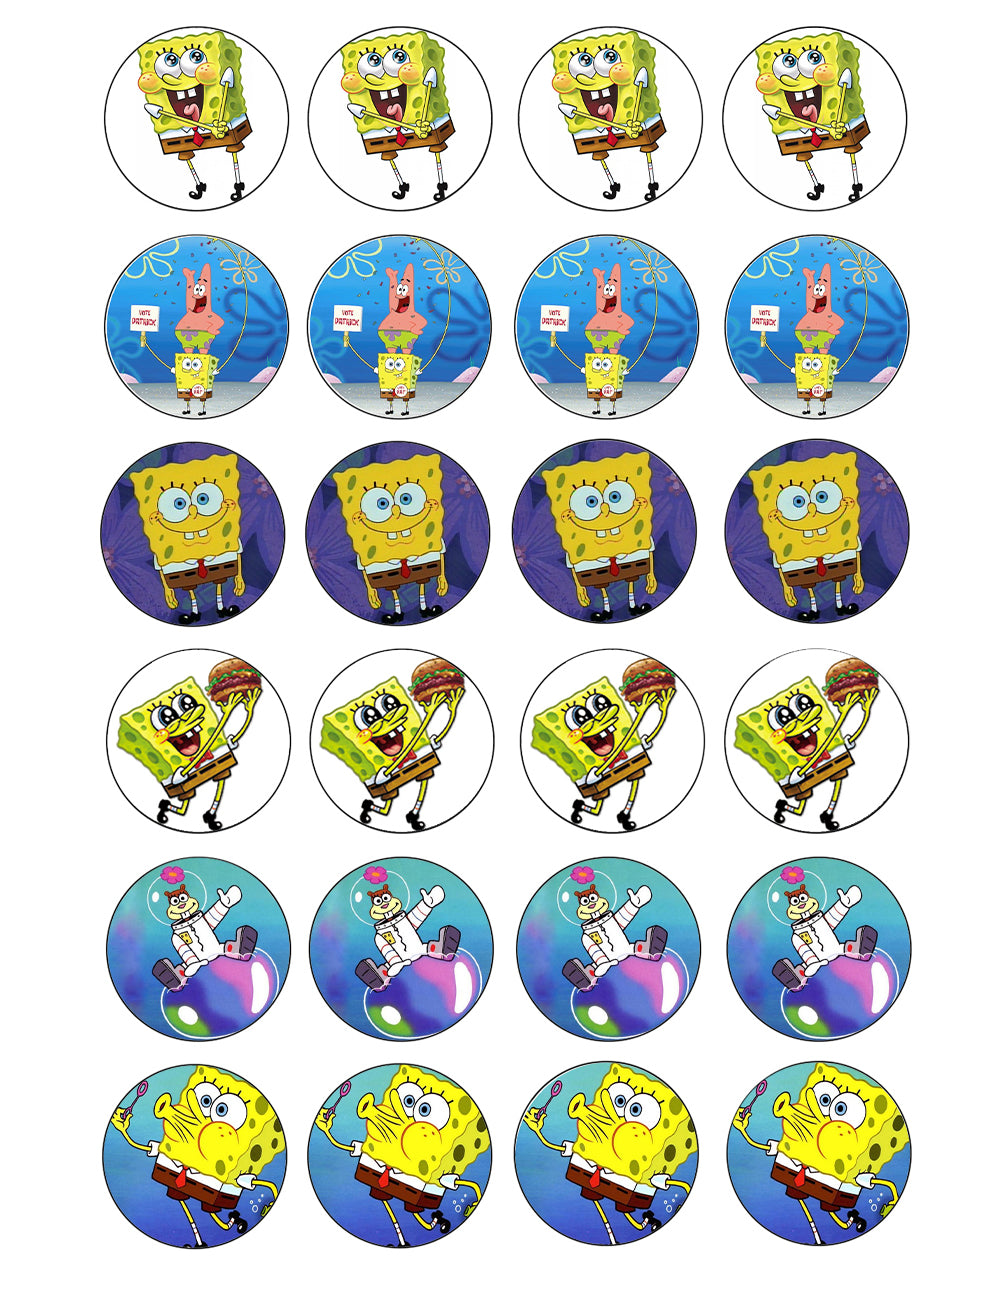 Spongebob Squarepants Crabby Patty Patrick Sandy Edible Cupcake Topper Images ABPID05148